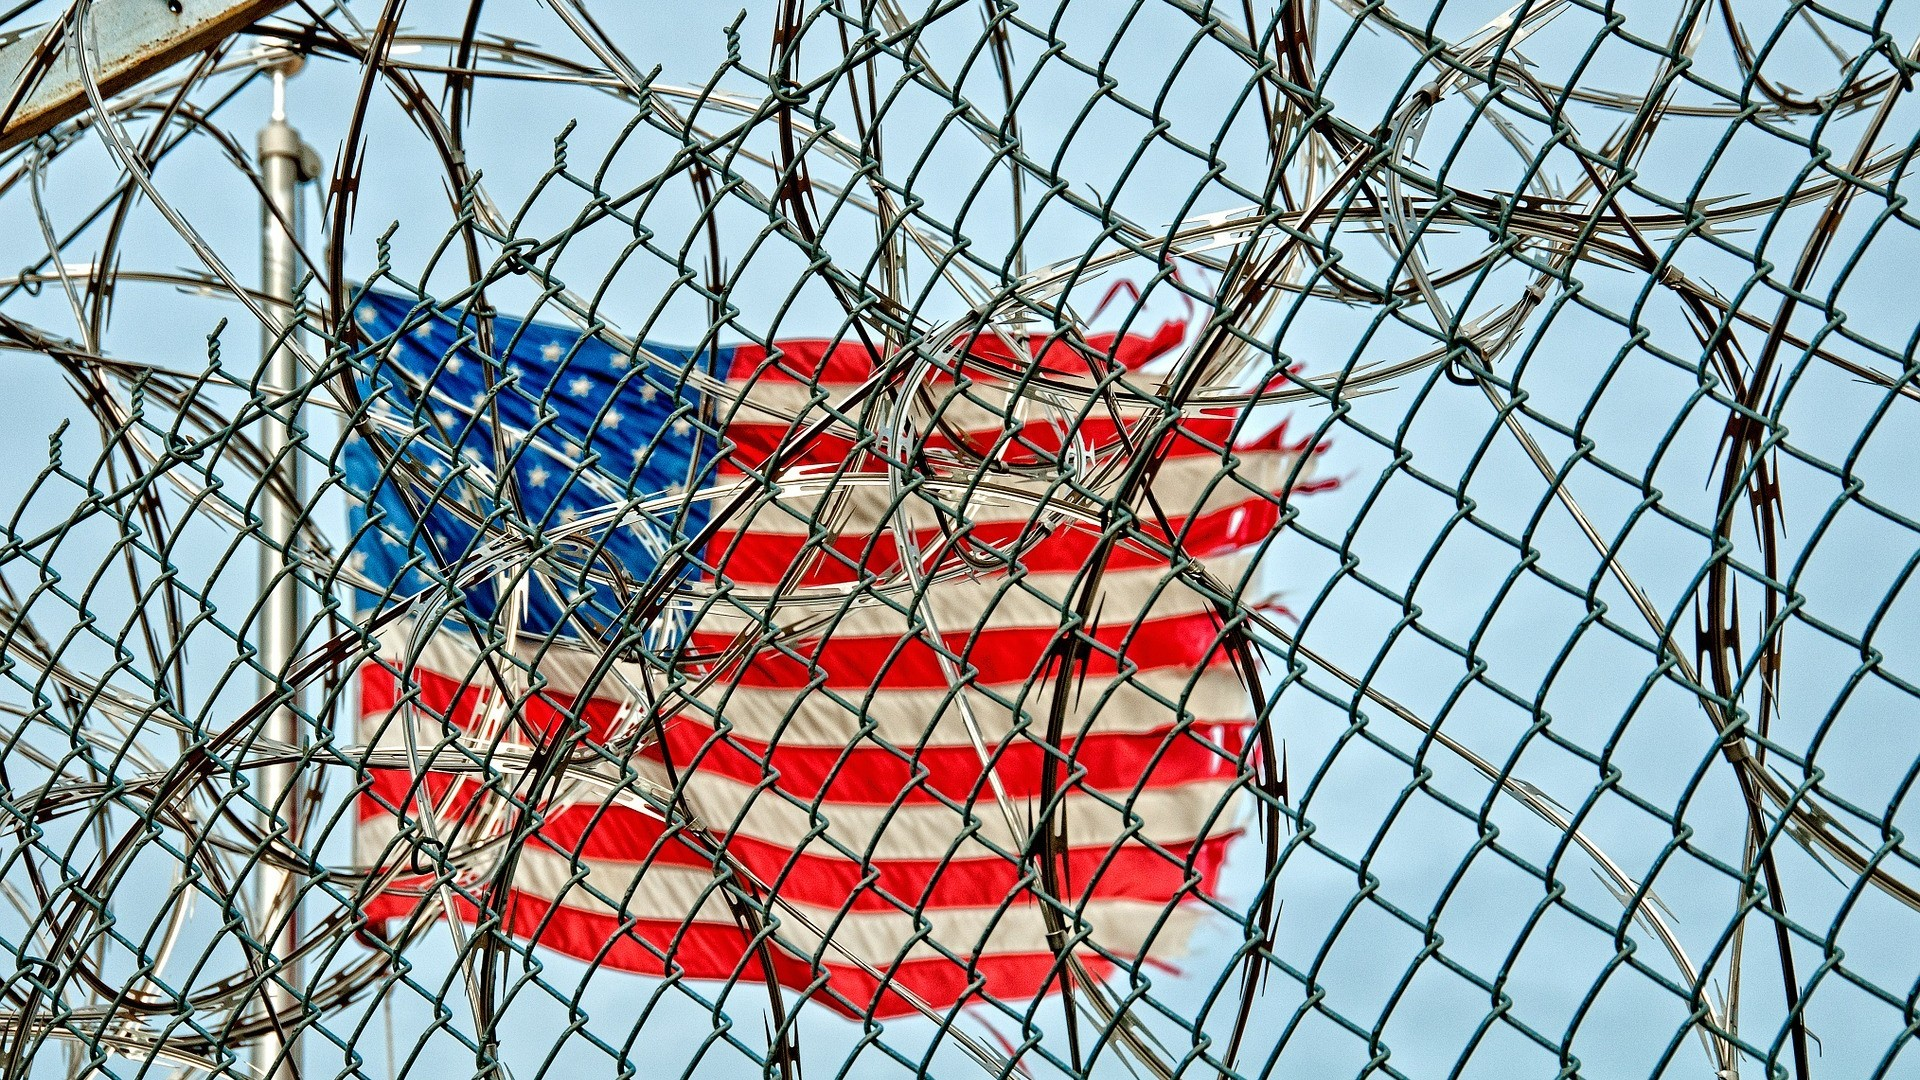 In 2015, The US Finally Agreed It's Time to End Mass Incarceration